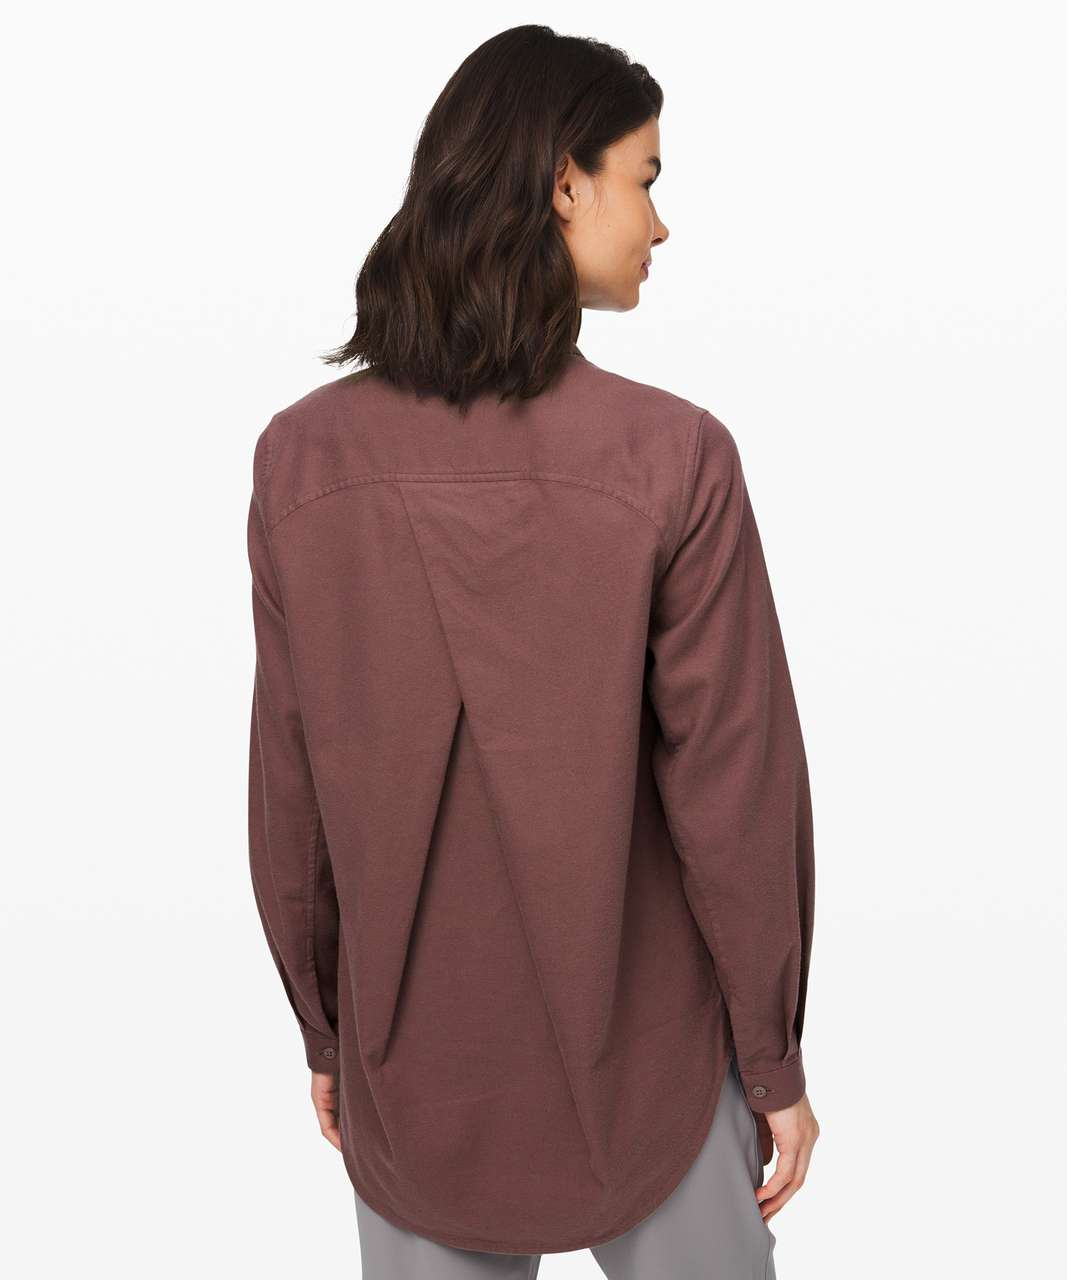 Lululemon Full Day Ahead Shirt - Antique Bark / Antique Bark